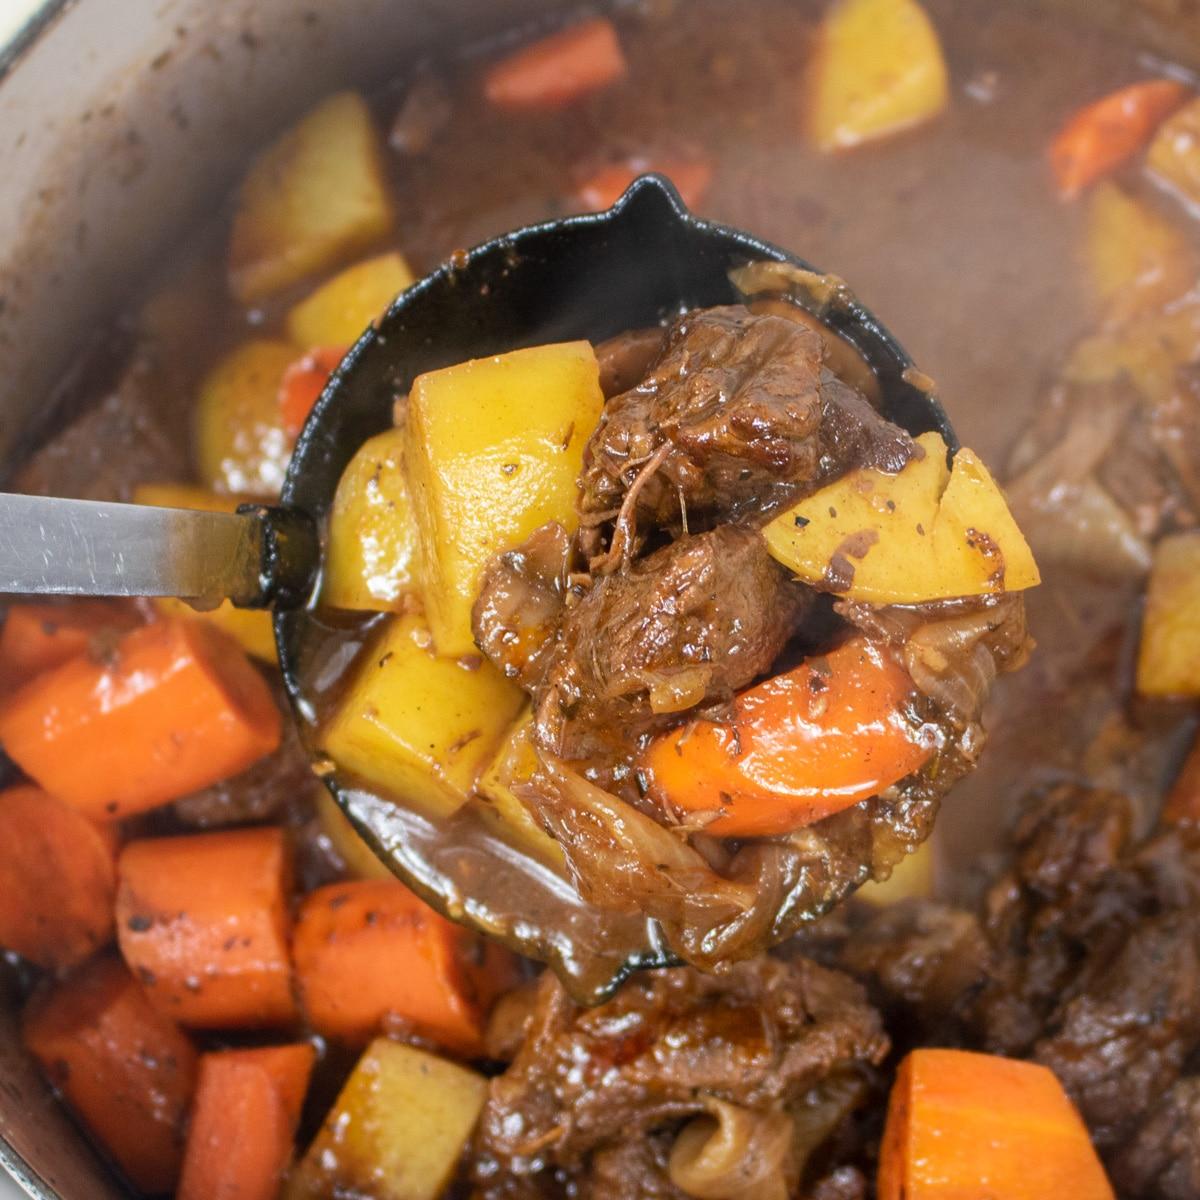 beef stew with potatoes and carrots in a ladle